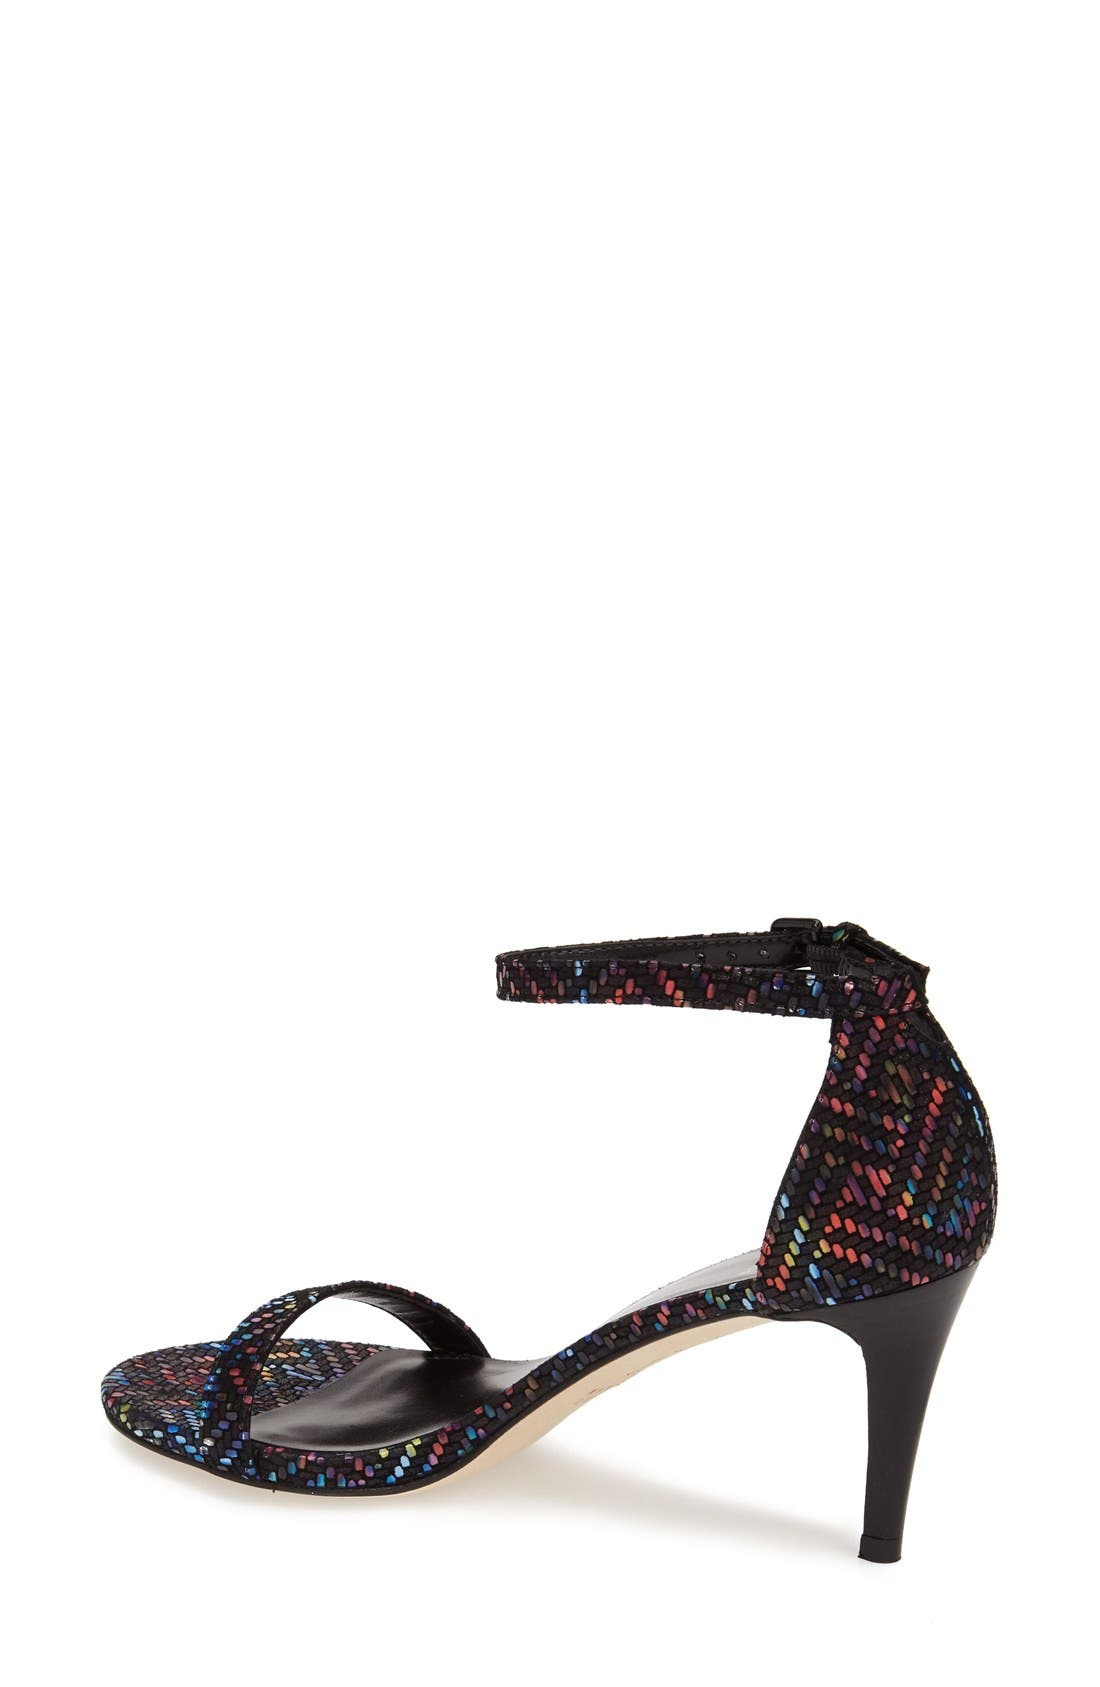 'Nunaked' Leather Ankle Strap Sandal,                             Alternate thumbnail 2, color,                             Multi Technicolor Nappa